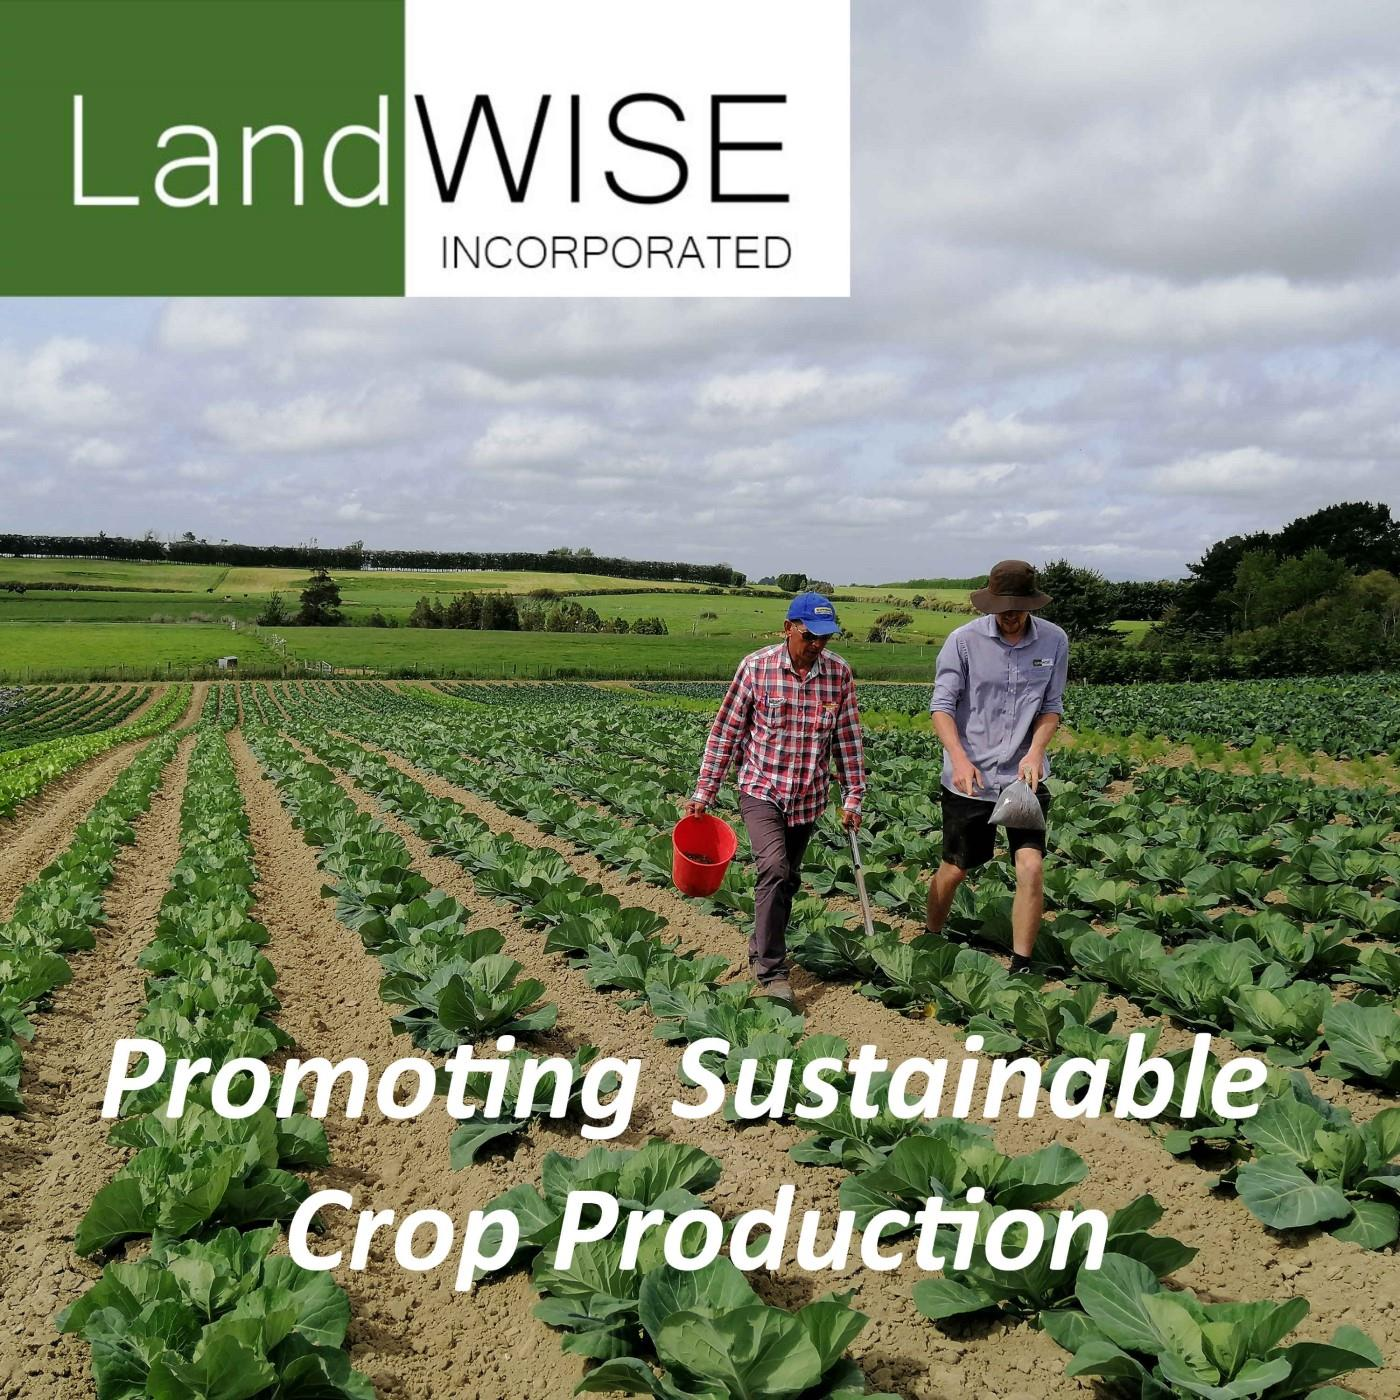 LandWISE - Promoting Sustainable Crop Production